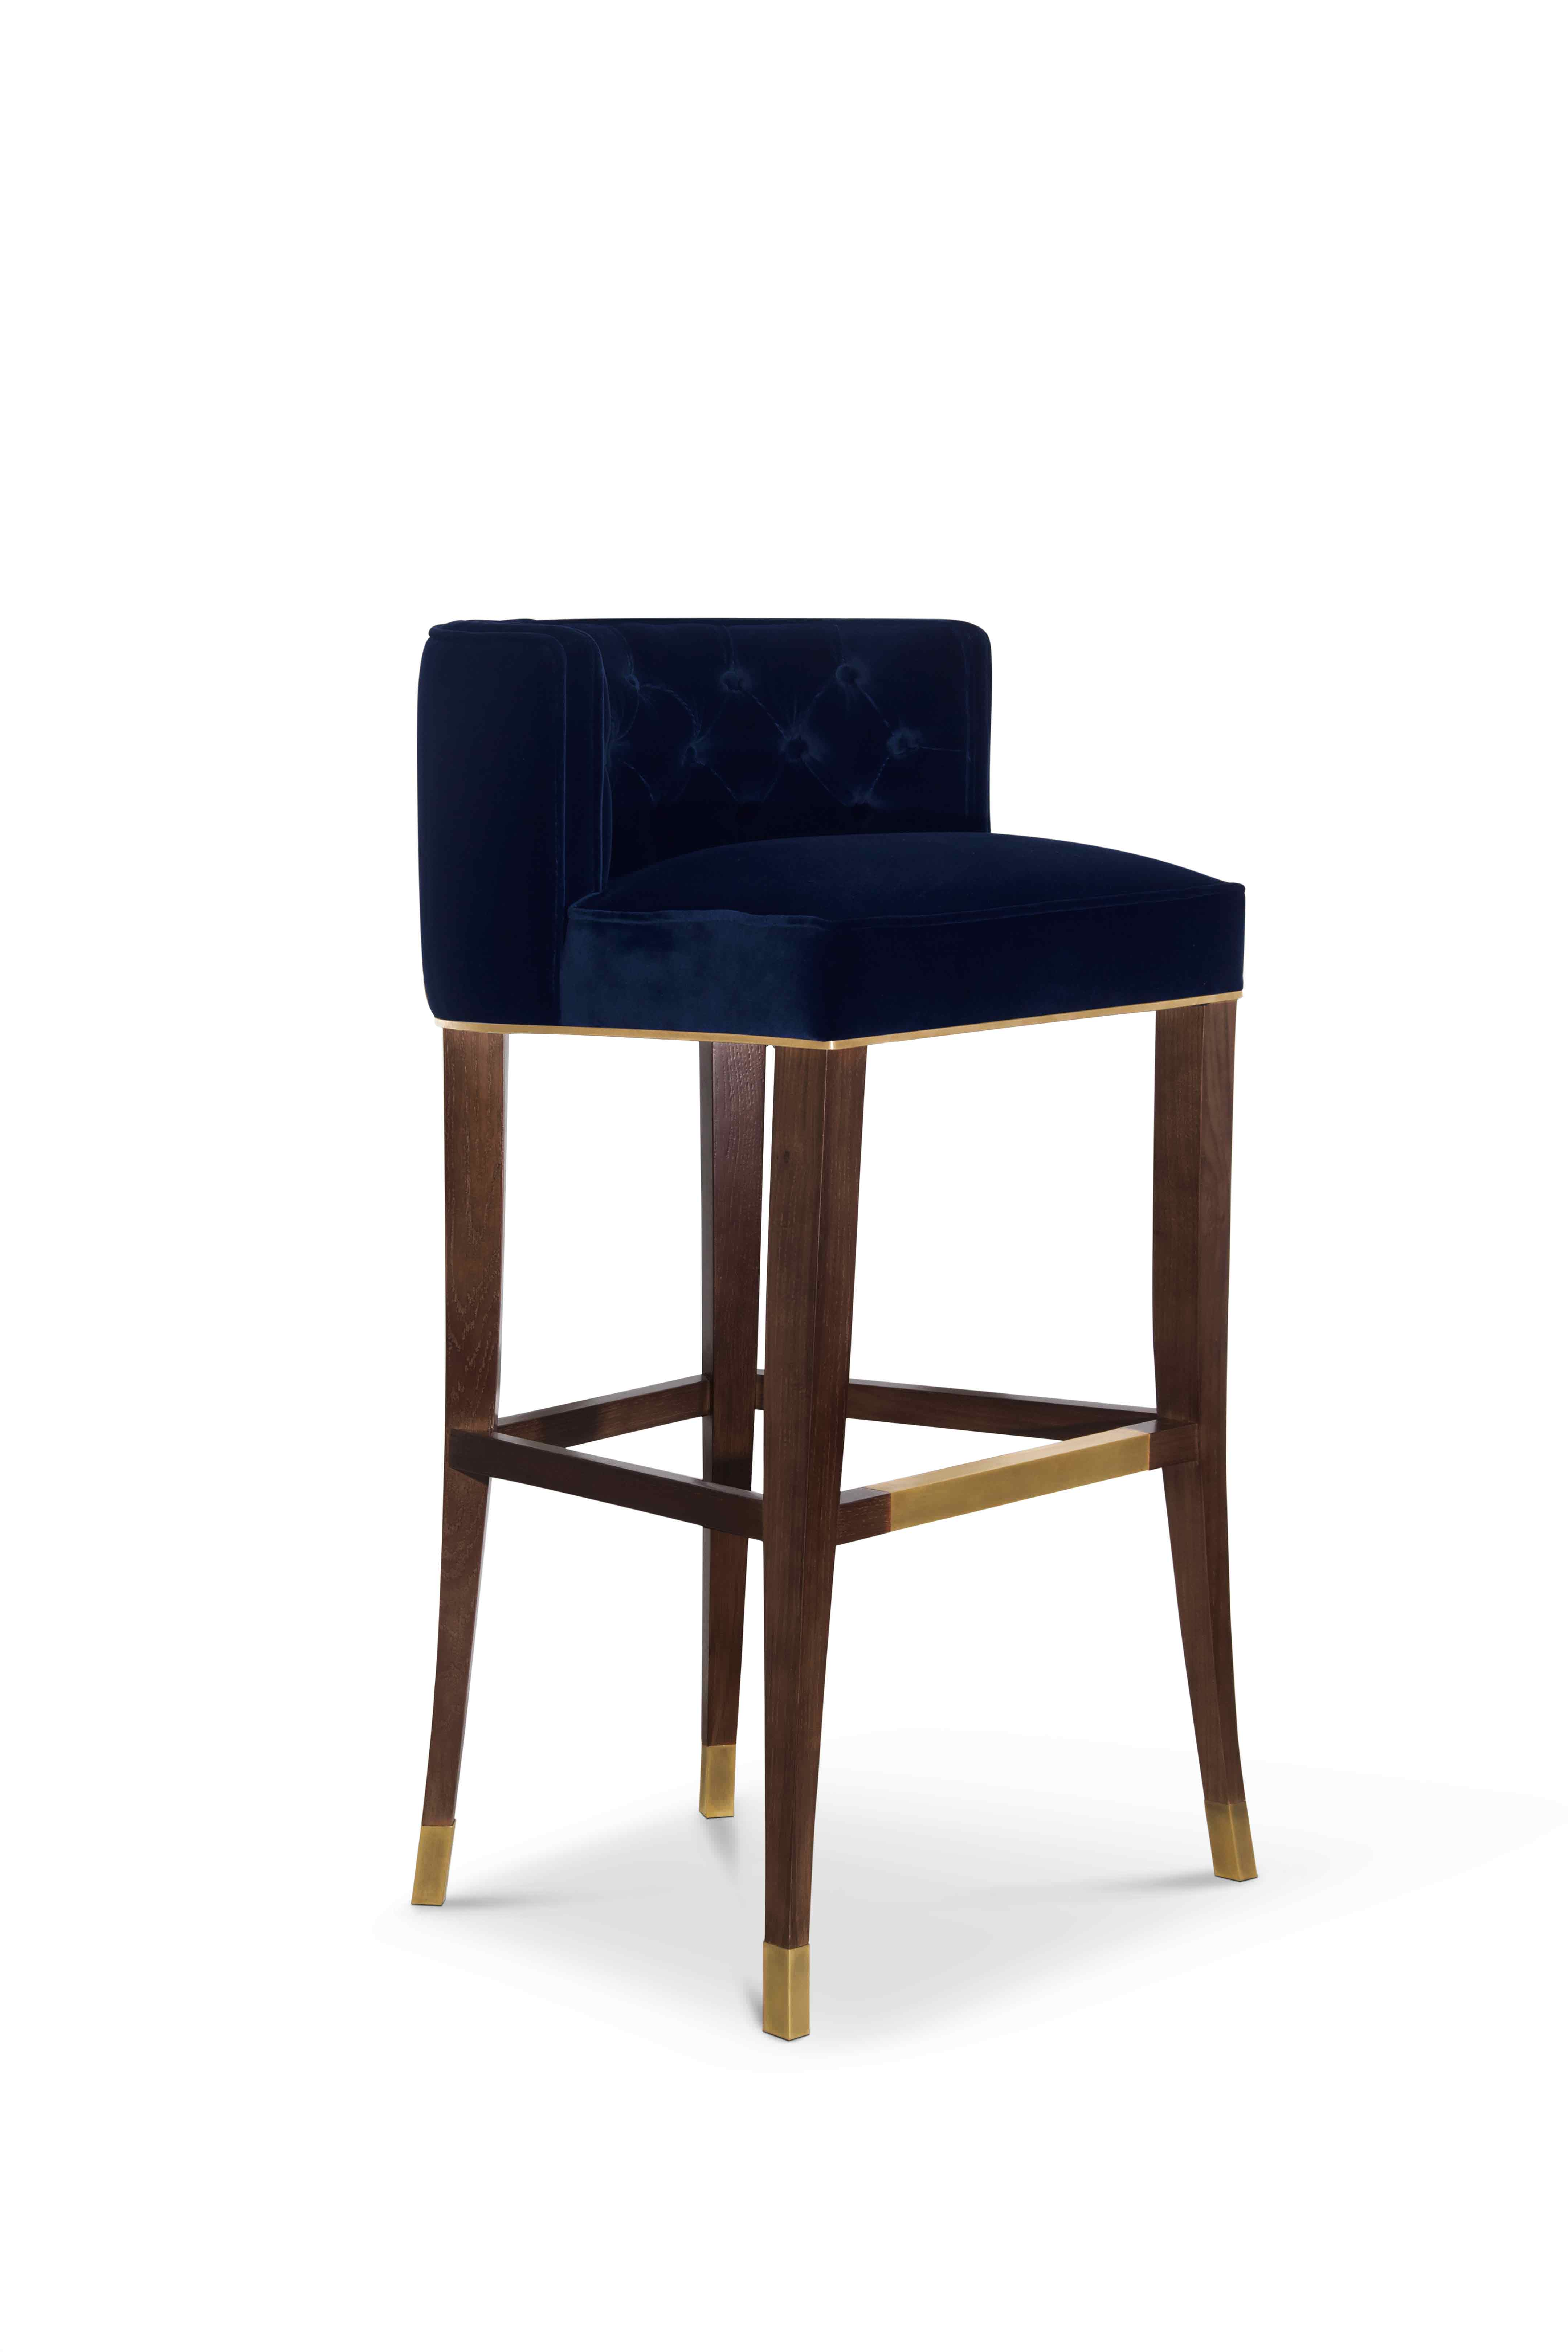 BOURBON BAR CHAIR